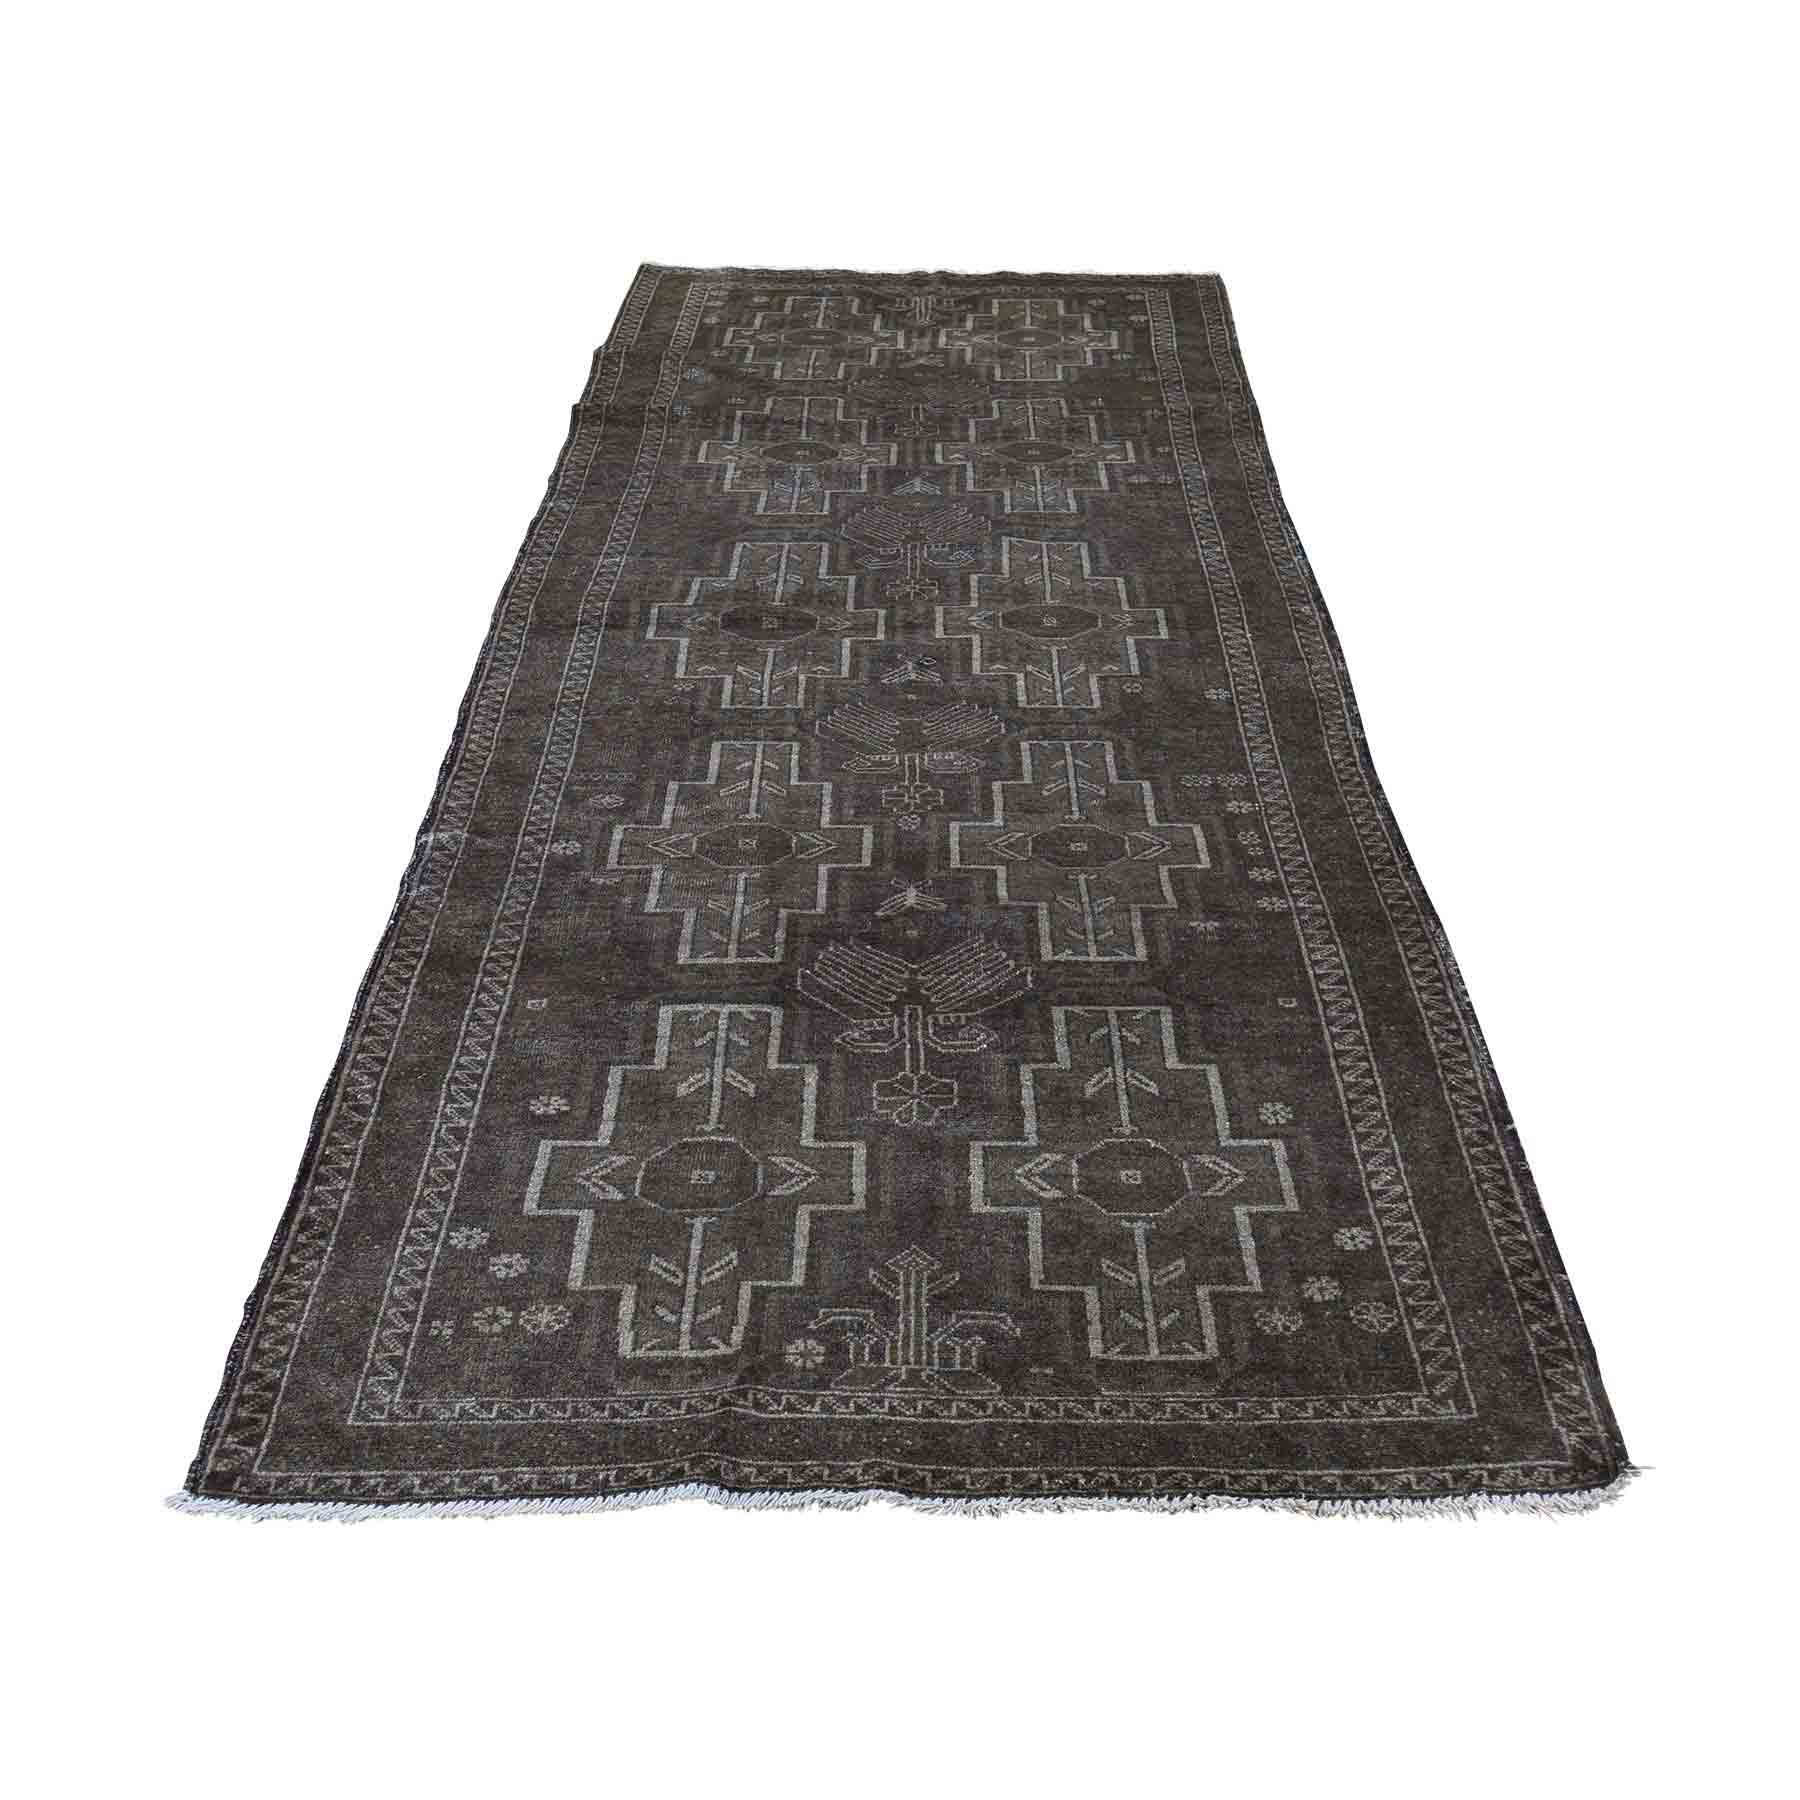 Washed Out Pure Wool Afghan Baluch Wide Runner Hand Knotted Oriental Rug 220730